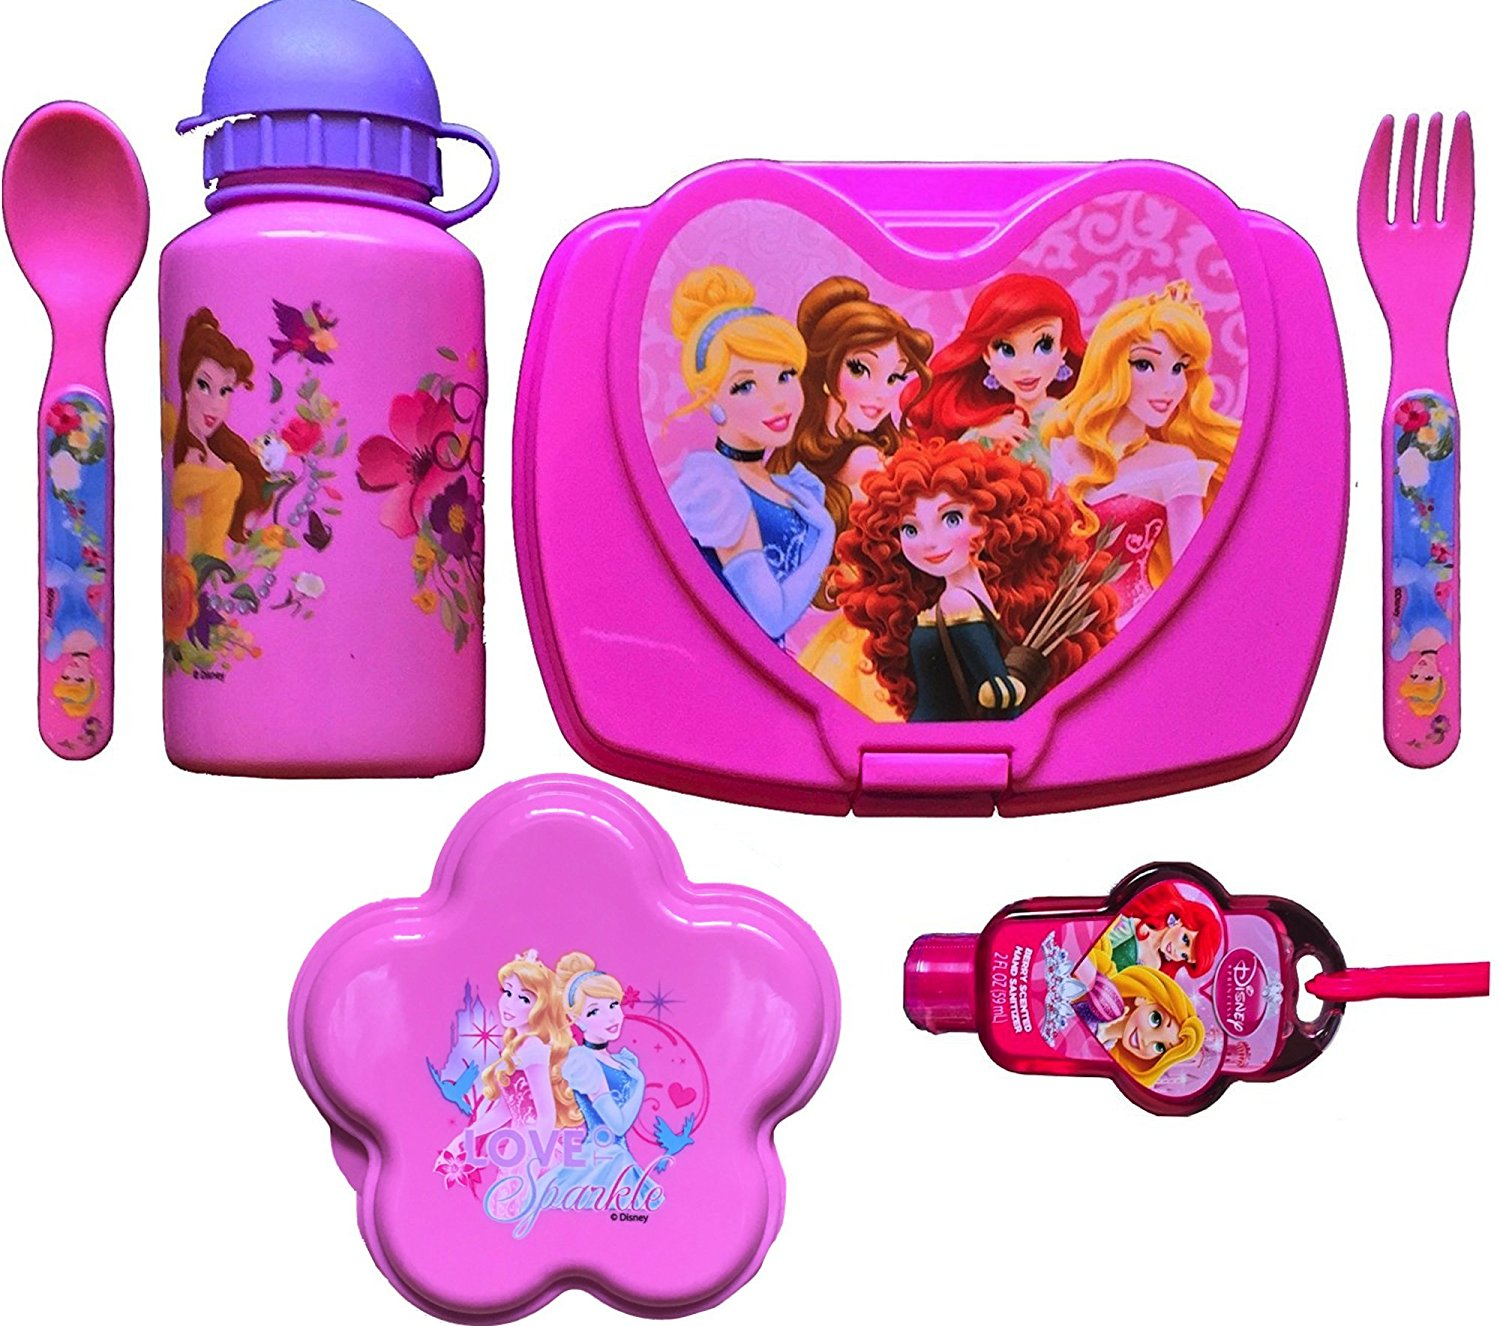 Disney Princesses 6 Piece Back to School Girls Lunch Kit Includes Princess Water Bottle , Princess Sandwich Container and Snack, Princess Flatware Set with Hand Sanitizer Back to School Lunch Specials